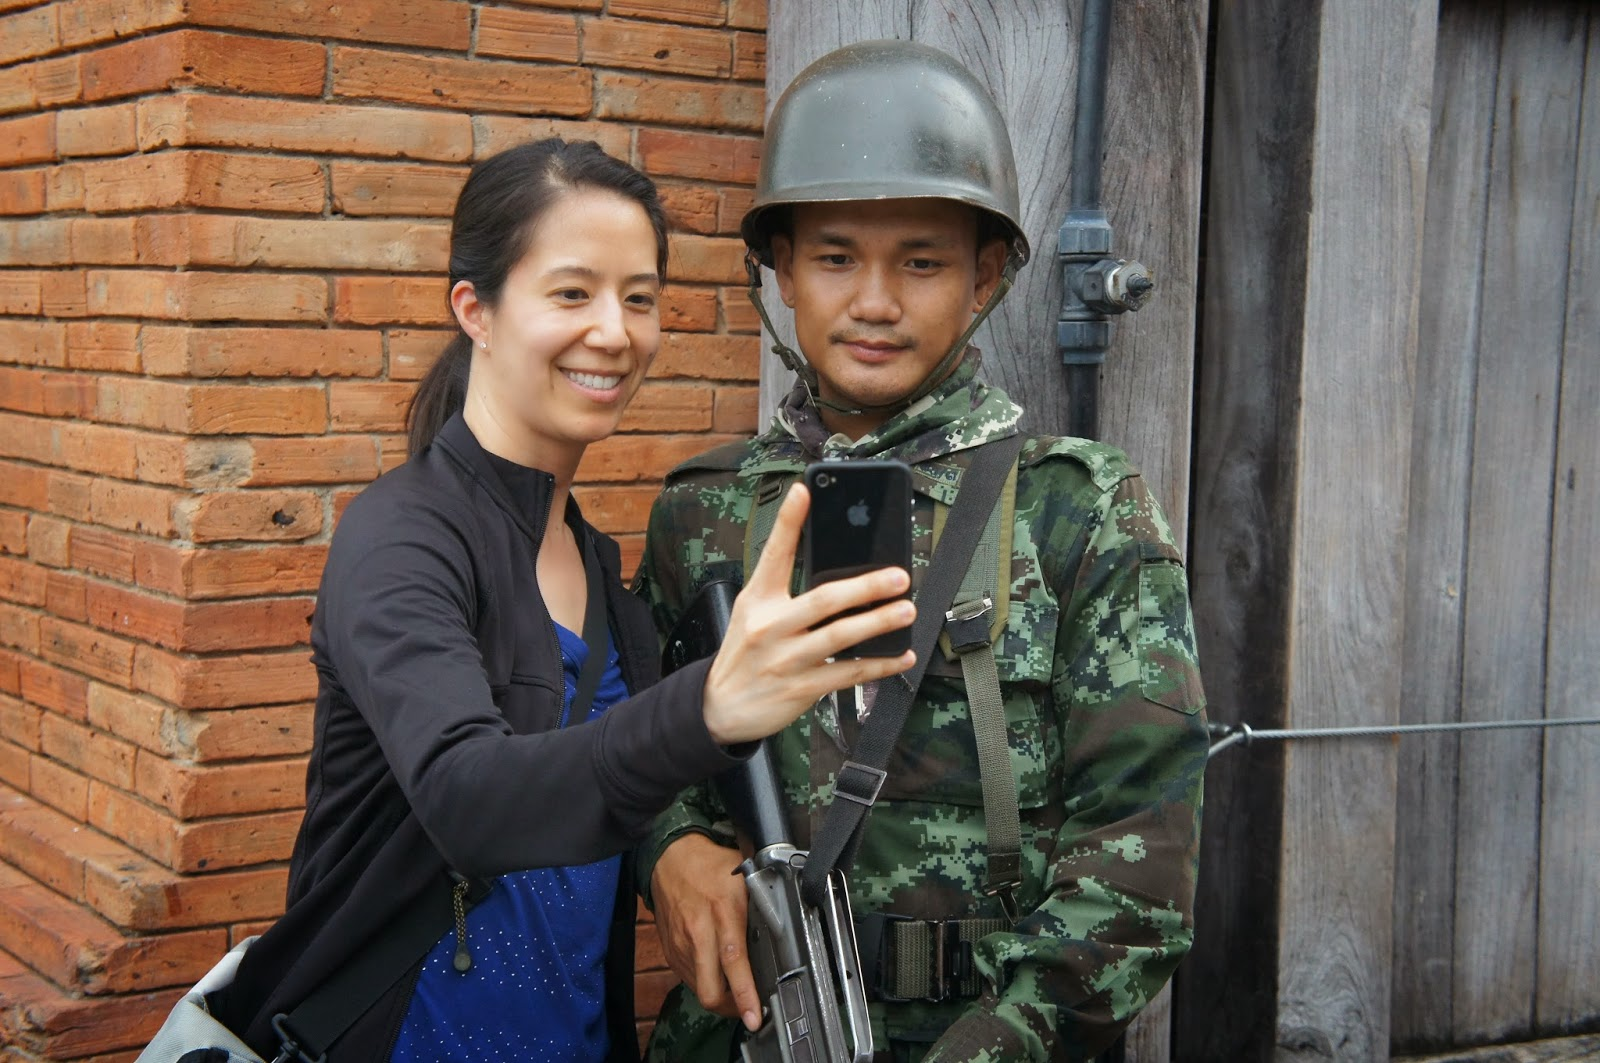 Chiang Mai - Okay I had to take a selfie with one of the military guys